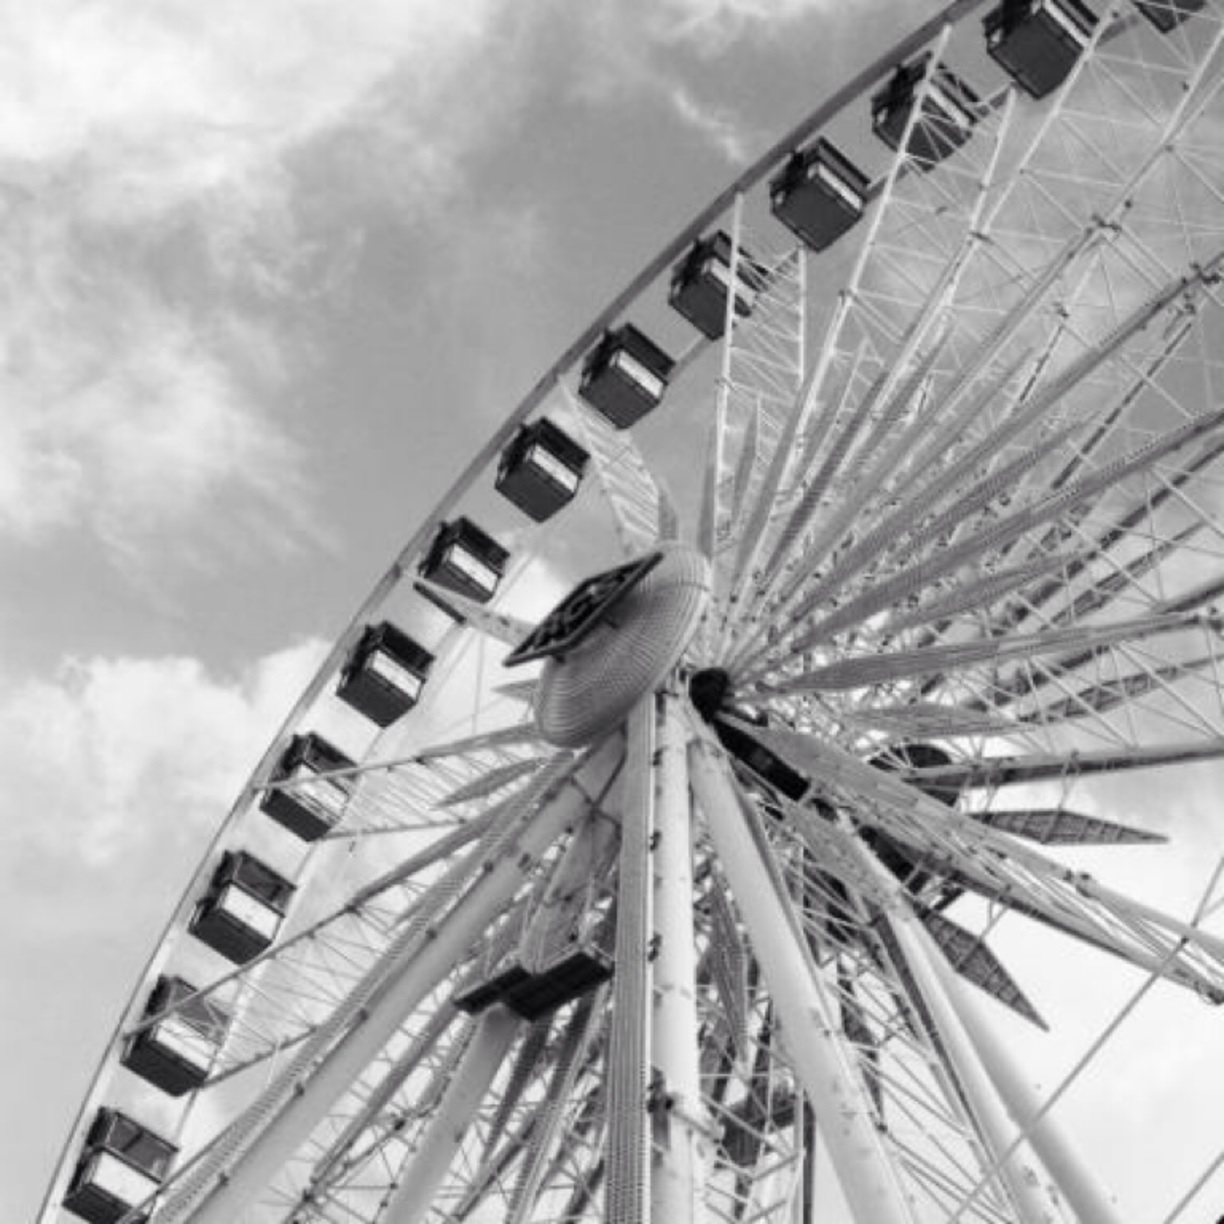 Once you're done riding this gigantic Ferris Wheel, take your Texas-sized appetite to restaurants that offer the top eats in Houston